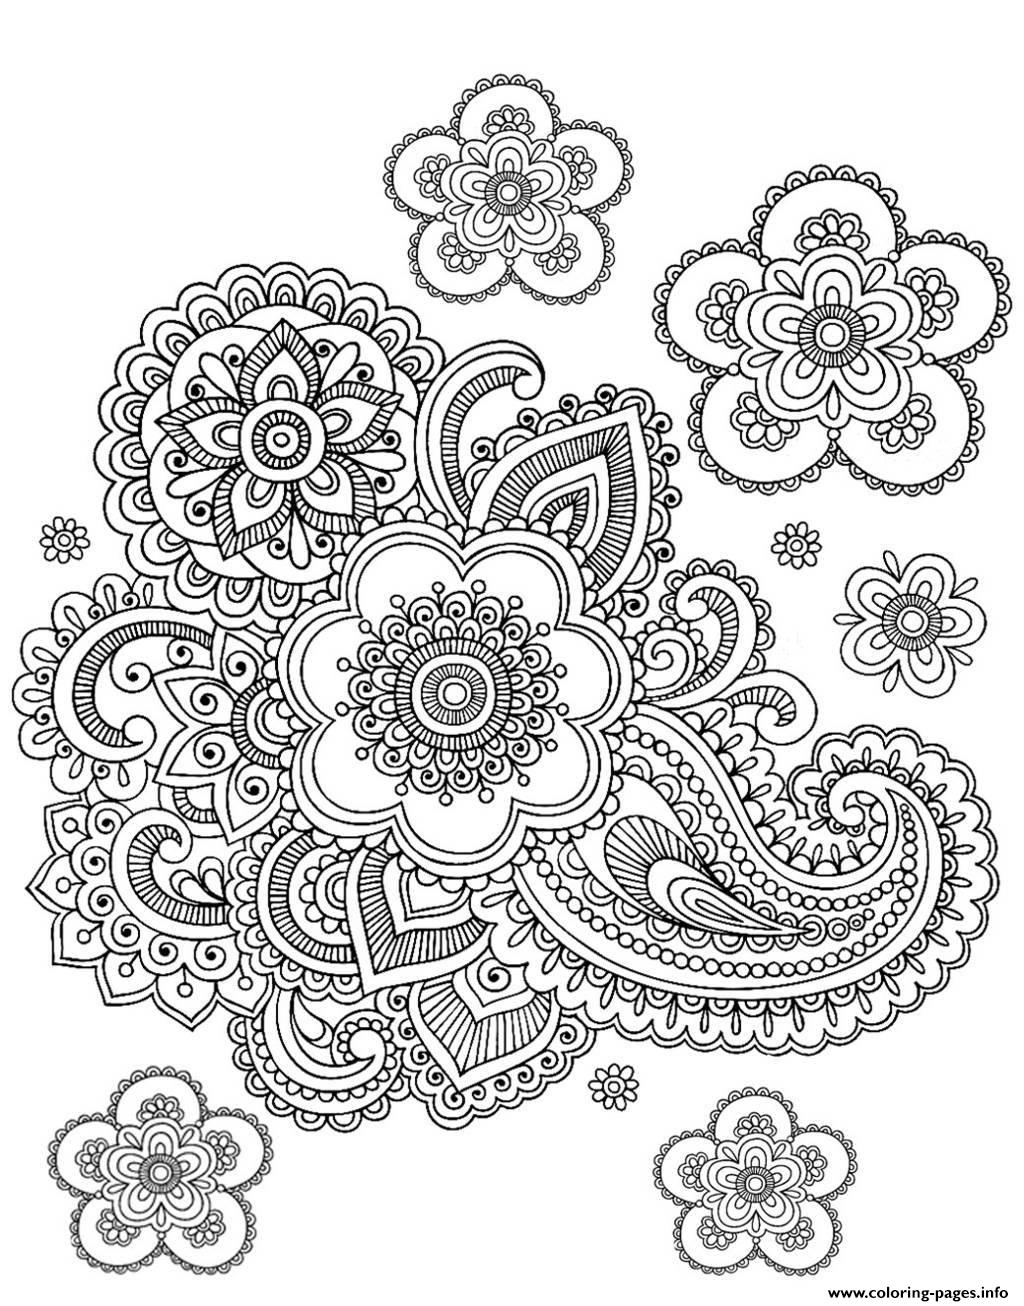 free printable paisley coloring pages paisley coloring page free printable coloring pages free pages printable coloring paisley